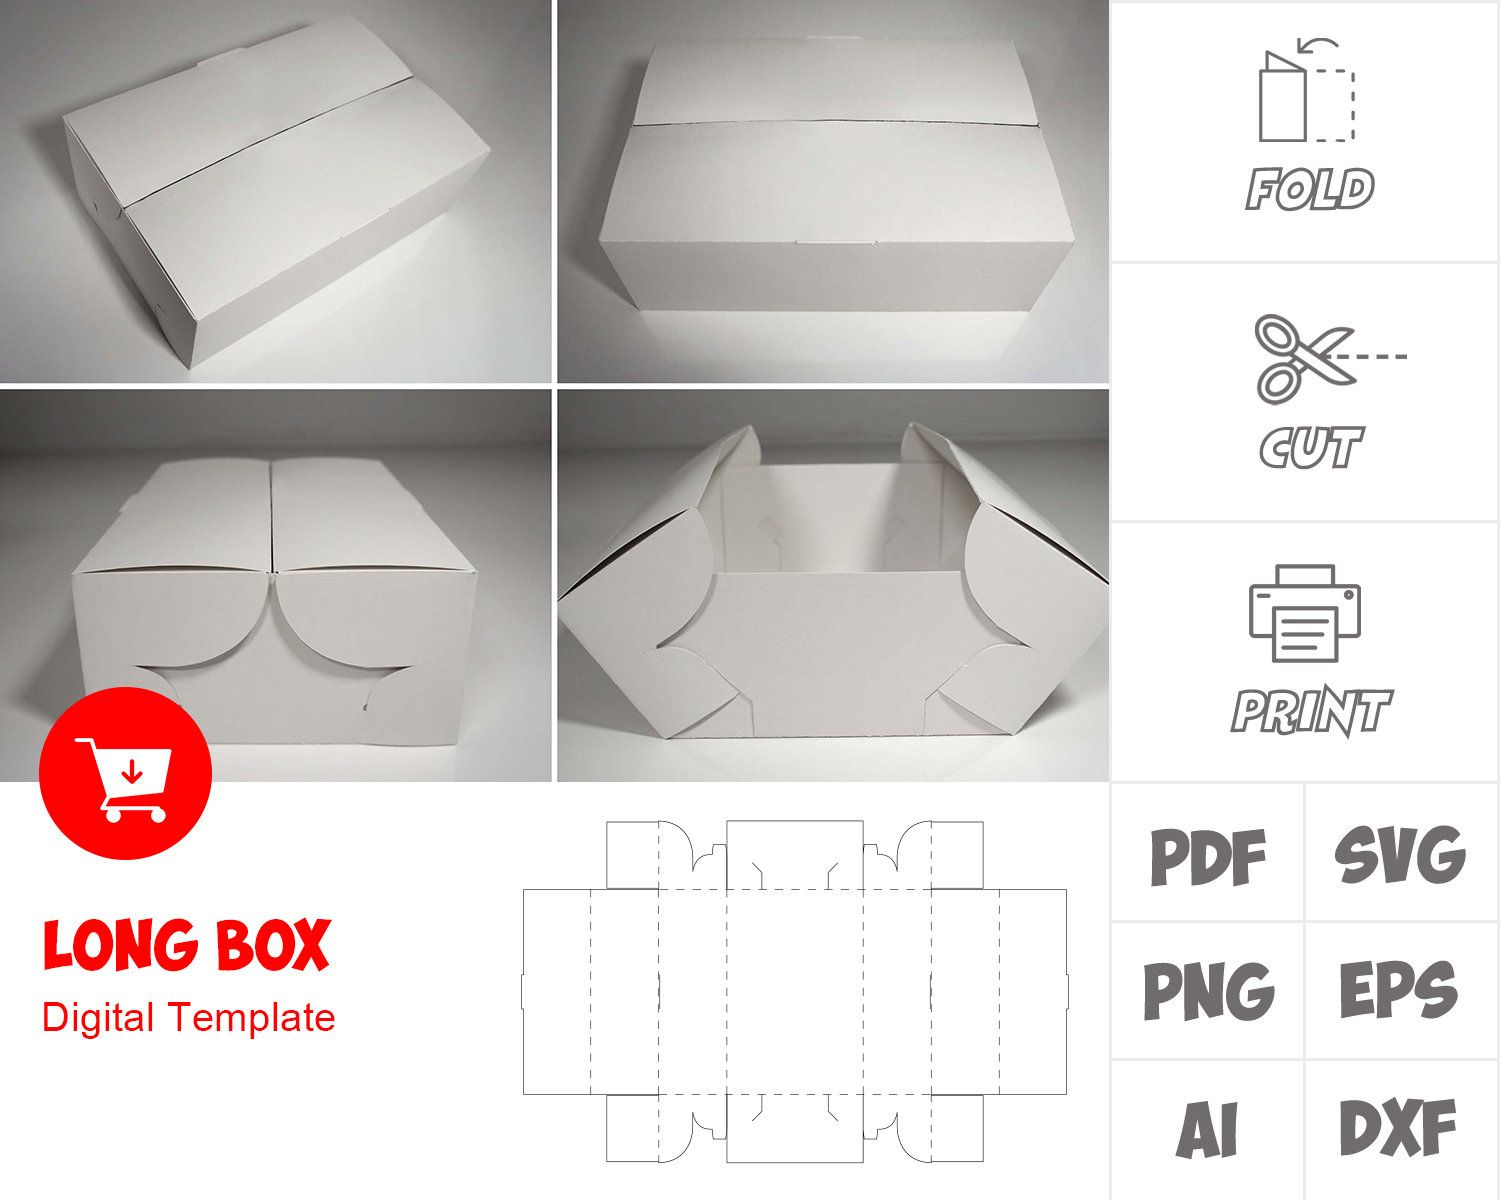 Long Box Template Svg Png Dxf Eps Ai Pdf For Print Etsy Diy Gift Box Template Packaging Template Design Box Template